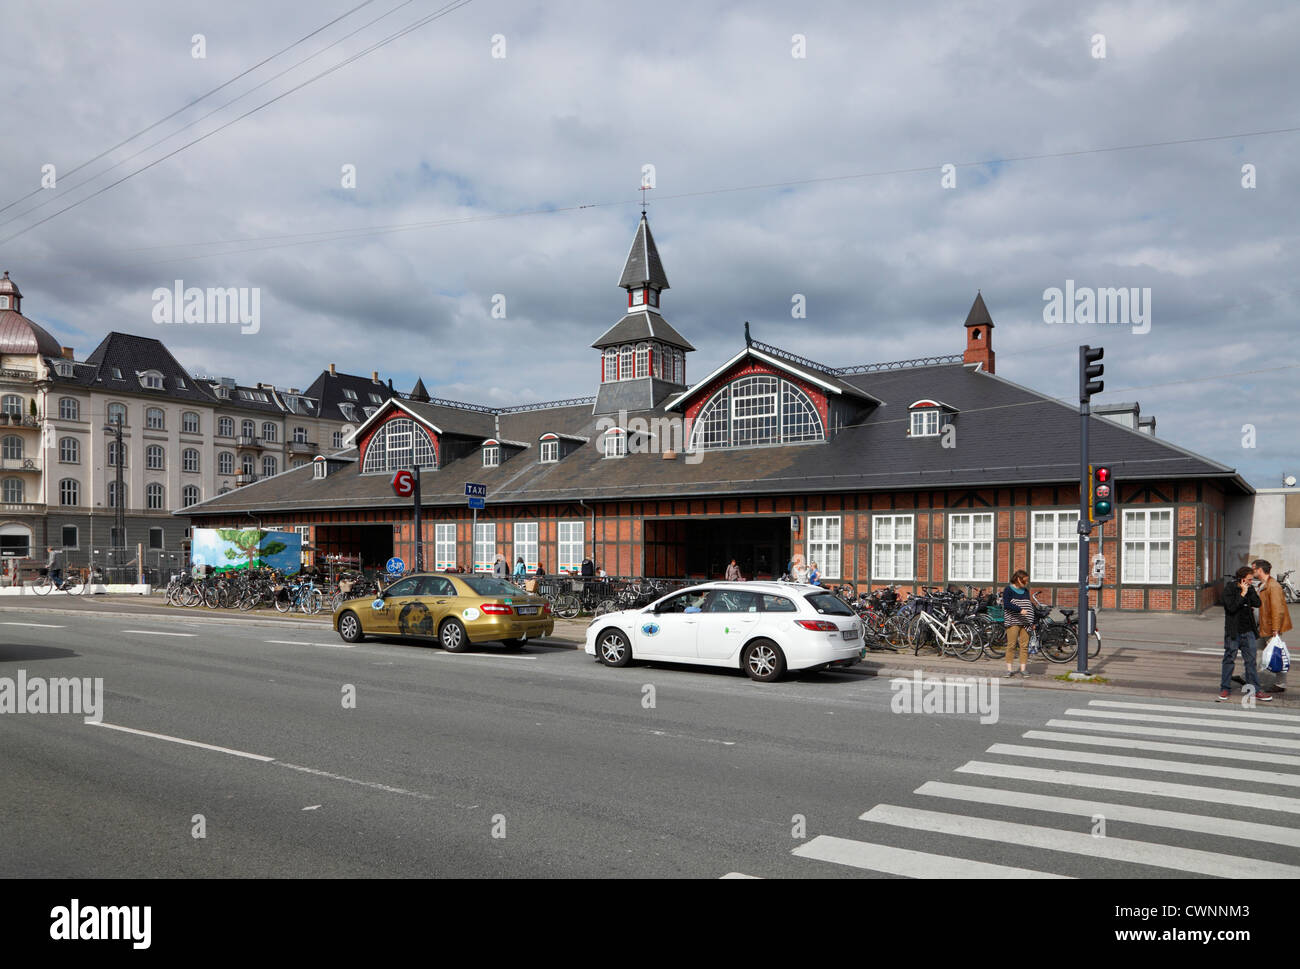 The railway station Østerport Station at Oslo Plads in the north-eastern part of Copenhagen, Denmark. Originally - Stock Image